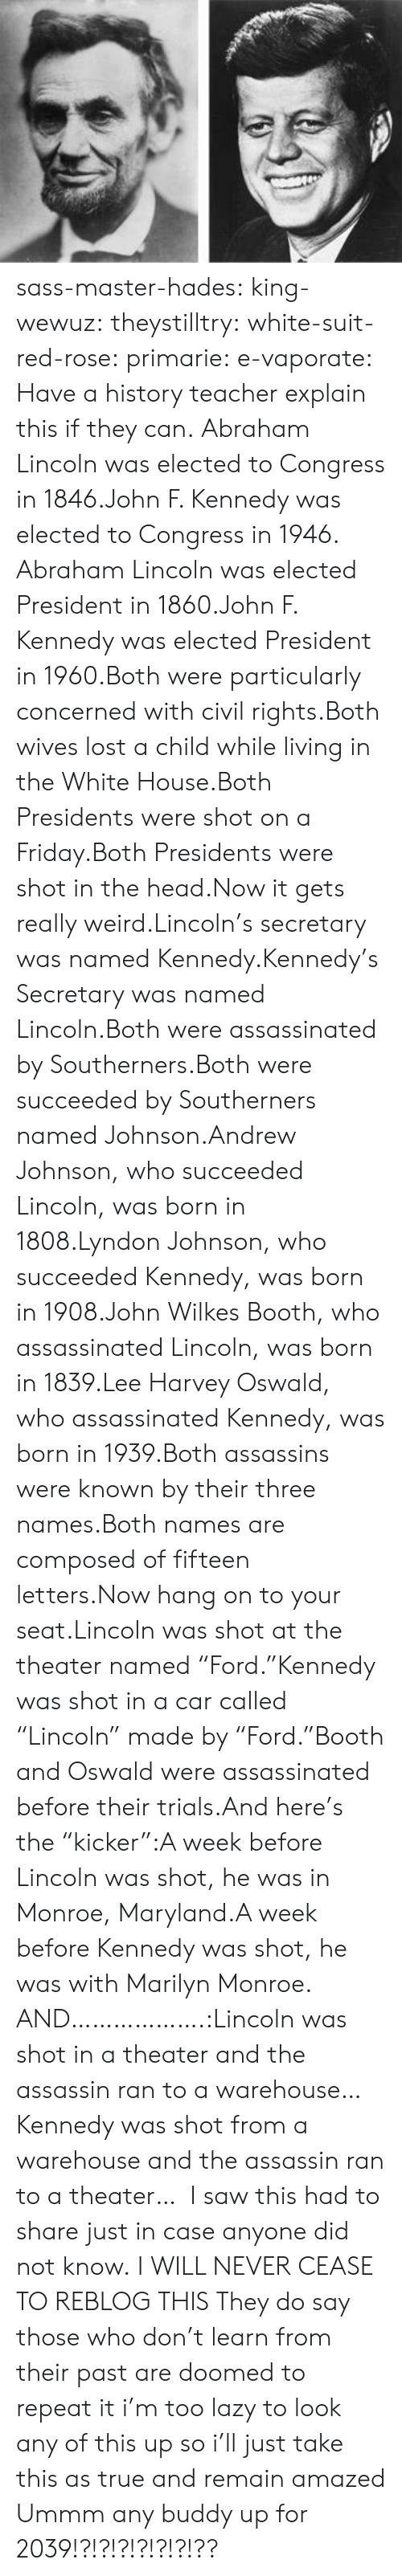 "Marilyn Monroe: sass-master-hades:  king-wewuz:  theystilltry:  white-suit-red-rose:  primarie:  e-vaporate:  Have a history teacher explain this if they can.  Abraham Lincoln was elected to Congress in 1846.John F. Kennedy was elected to Congress in 1946.    Abraham Lincoln was elected President in 1860.John F. Kennedy was elected President in 1960.Both were particularly concerned with civil rights.Both wives lost a child while living in the White House.Both Presidents were shot on a Friday.Both Presidents were shot in the head.Now it gets really weird.Lincoln's secretary was named Kennedy.Kennedy's Secretary was named Lincoln.Both were assassinated by Southerners.Both were succeeded by Southerners named Johnson.Andrew Johnson, who succeeded Lincoln, was born in 1808.Lyndon Johnson, who succeeded Kennedy, was born in 1908.John Wilkes Booth, who assassinated Lincoln, was born in 1839.Lee Harvey Oswald, who assassinated Kennedy, was born in 1939.Both assassins were known by their three names.Both names are composed of fifteen letters.Now hang on to your seat.Lincoln was shot at the theater named ""Ford.""Kennedy was shot in a car called ""Lincoln"" made by ""Ford.""Booth and Oswald were assassinated before their trials.And here's the ""kicker"":A week before Lincoln was shot, he was in Monroe, Maryland.A week before Kennedy was shot, he was with Marilyn Monroe.   AND……………….:Lincoln was shot in a theater and the assassin ran to a warehouse…Kennedy was shot from a warehouse and the assassin ran to a theater…  I saw this had to share just in case anyone did not know.  I WILL NEVER CEASE TO REBLOG THIS    They do say those who don't learn from their past are doomed to repeat it  i'm too lazy to look any of this up so i'll just take this as true and remain amazed  Ummm any buddy up for 2039!?!?!?!?!?!?!??"